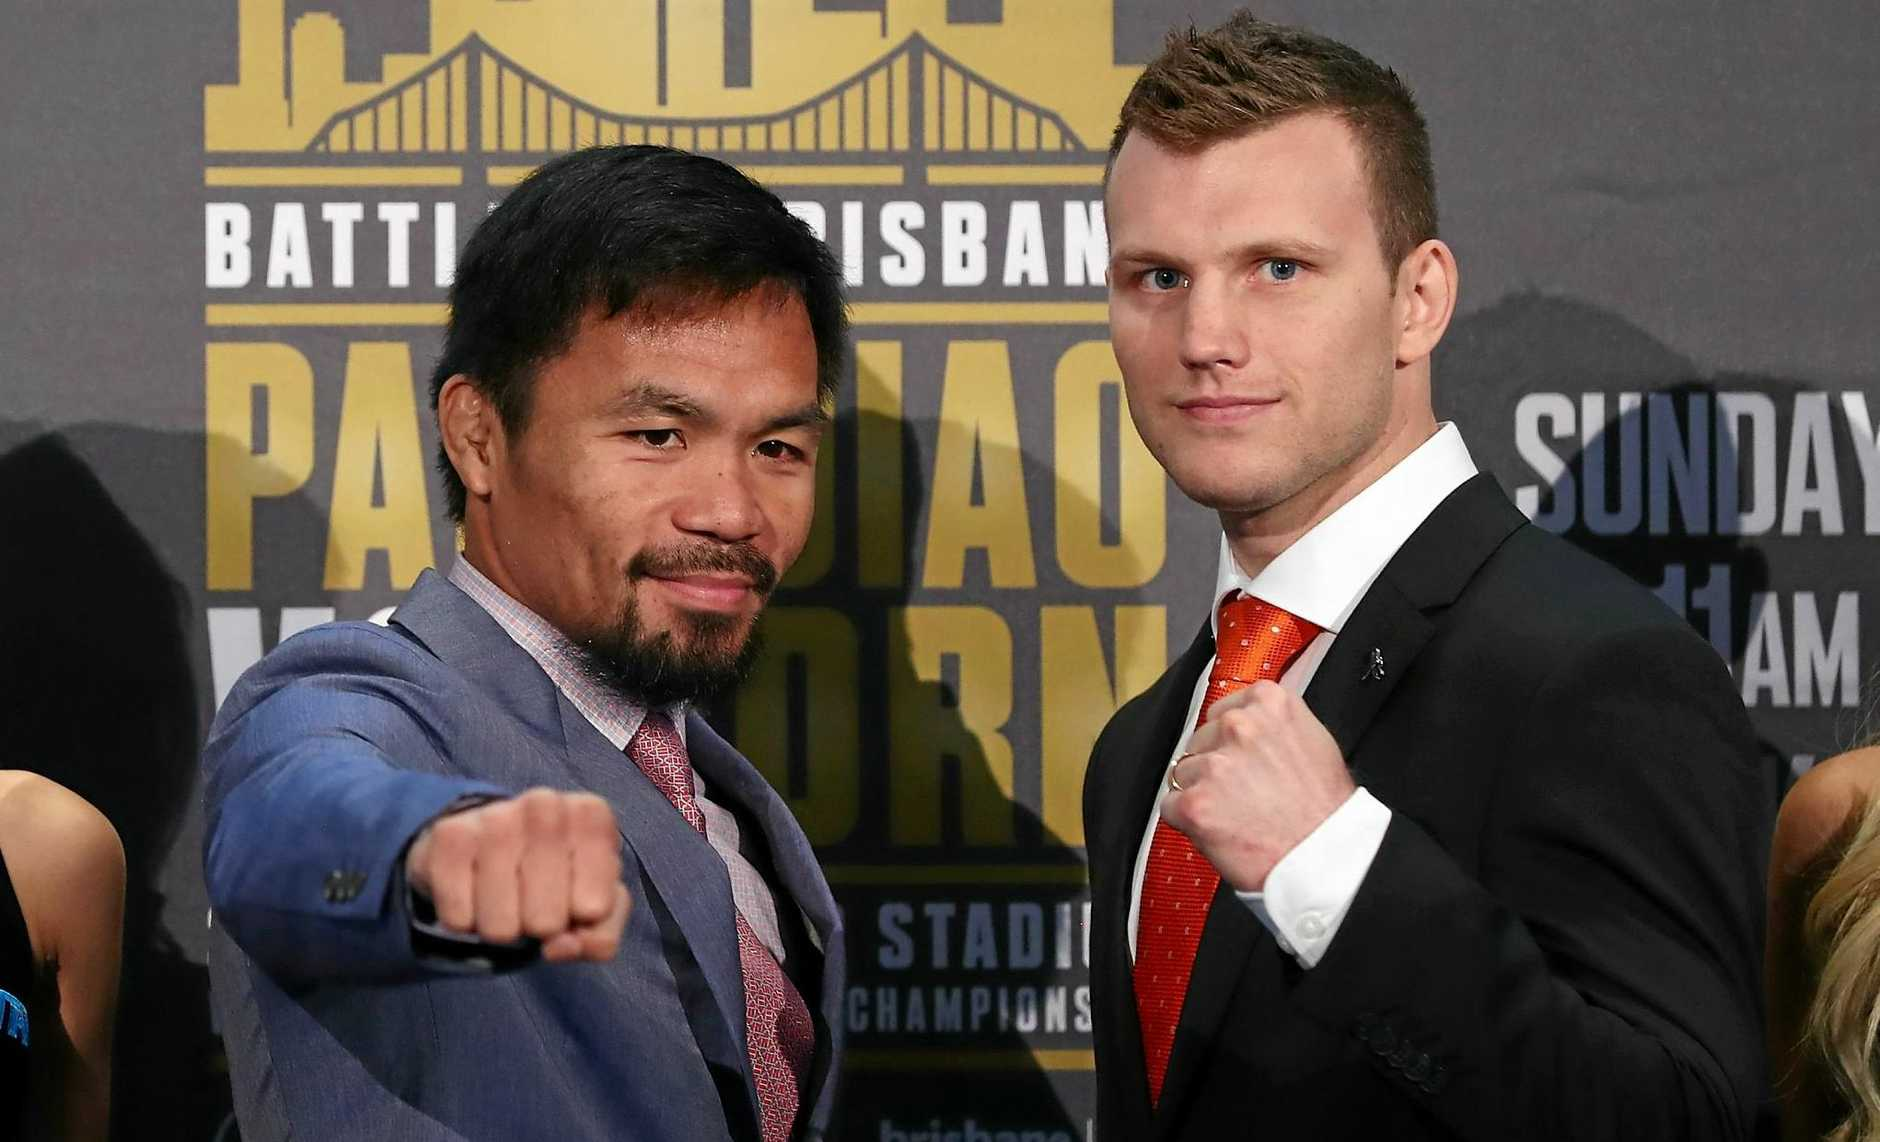 Manny Pacquiao (left) and Jeff Horn face off after the official press conference for tomorrow's WBO World Welterweight Championship at Suncorp Stadium.